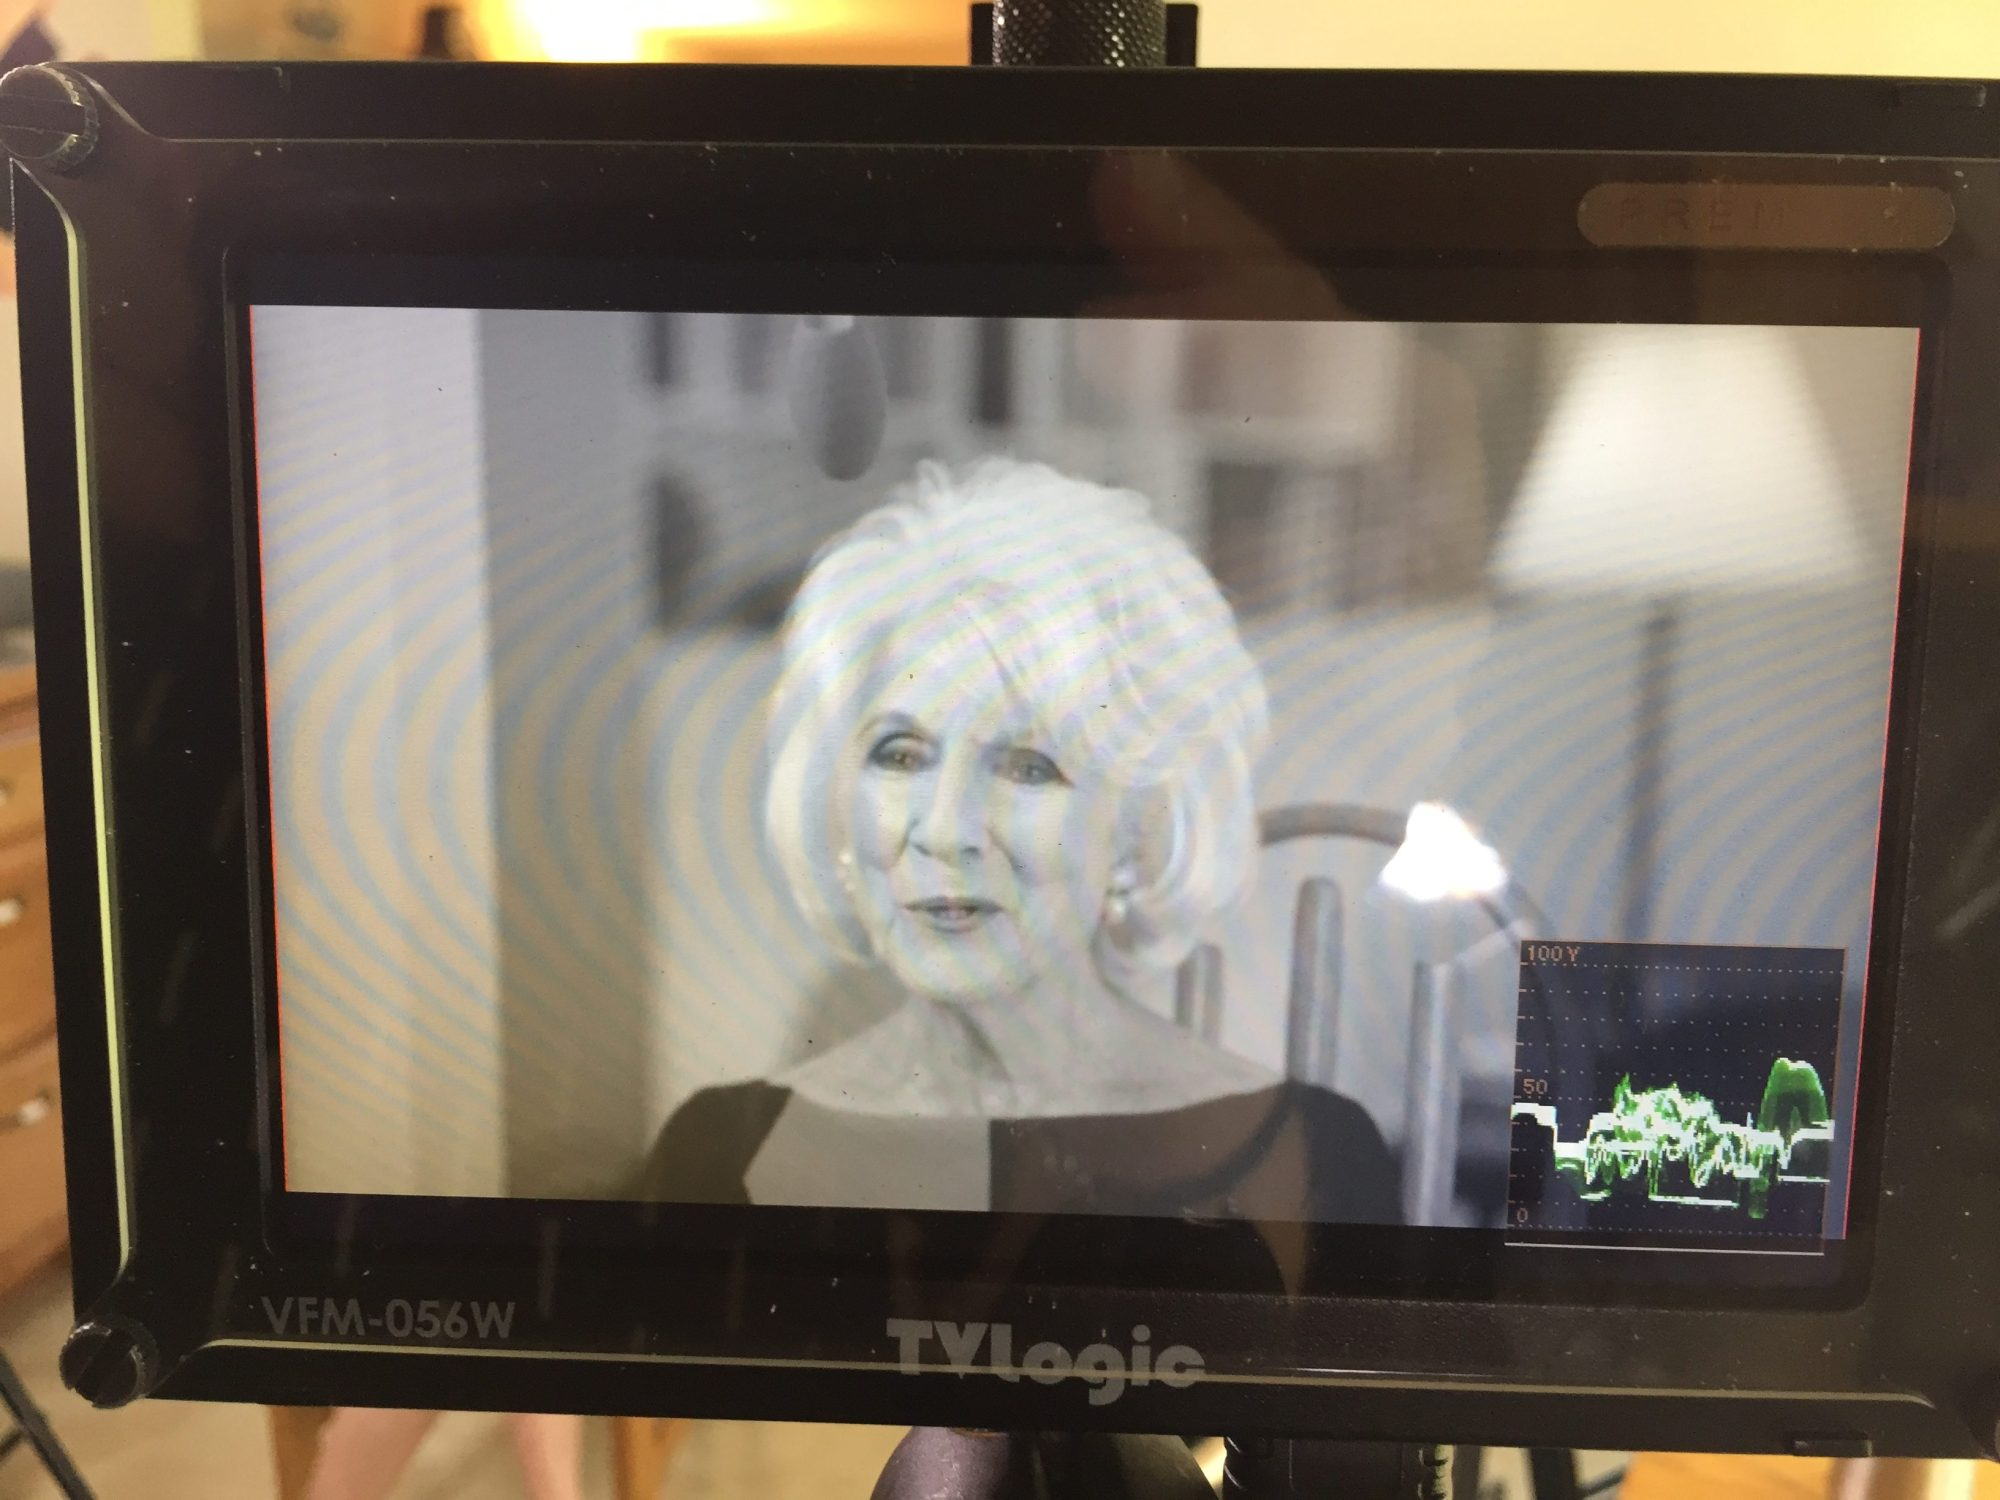 hight resolution of as seen through my monitor diane rehm conducting an interview for when my time comes